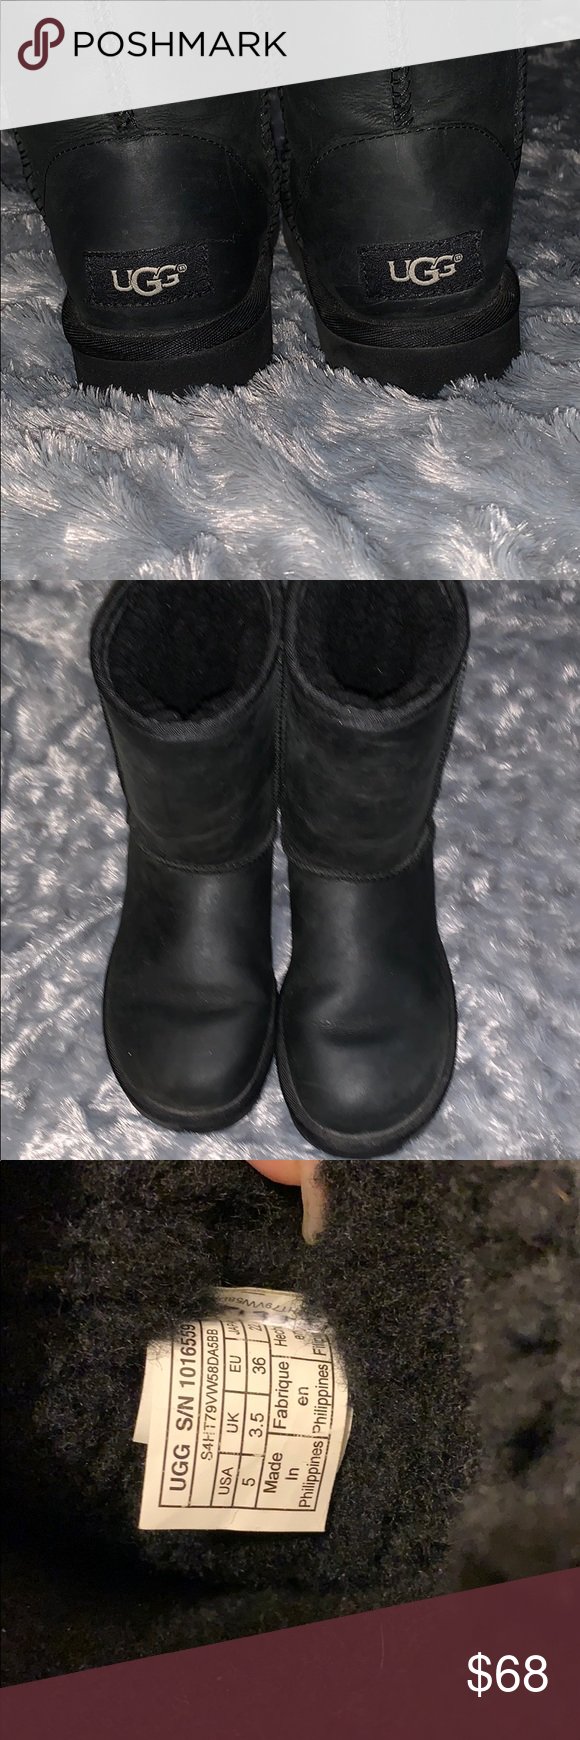 Black Leather UGG boots Girls 5 Classic short black leather gently worn UGG boots girls size 5 UGG Shoes #uggbootsoutfitblackgirl